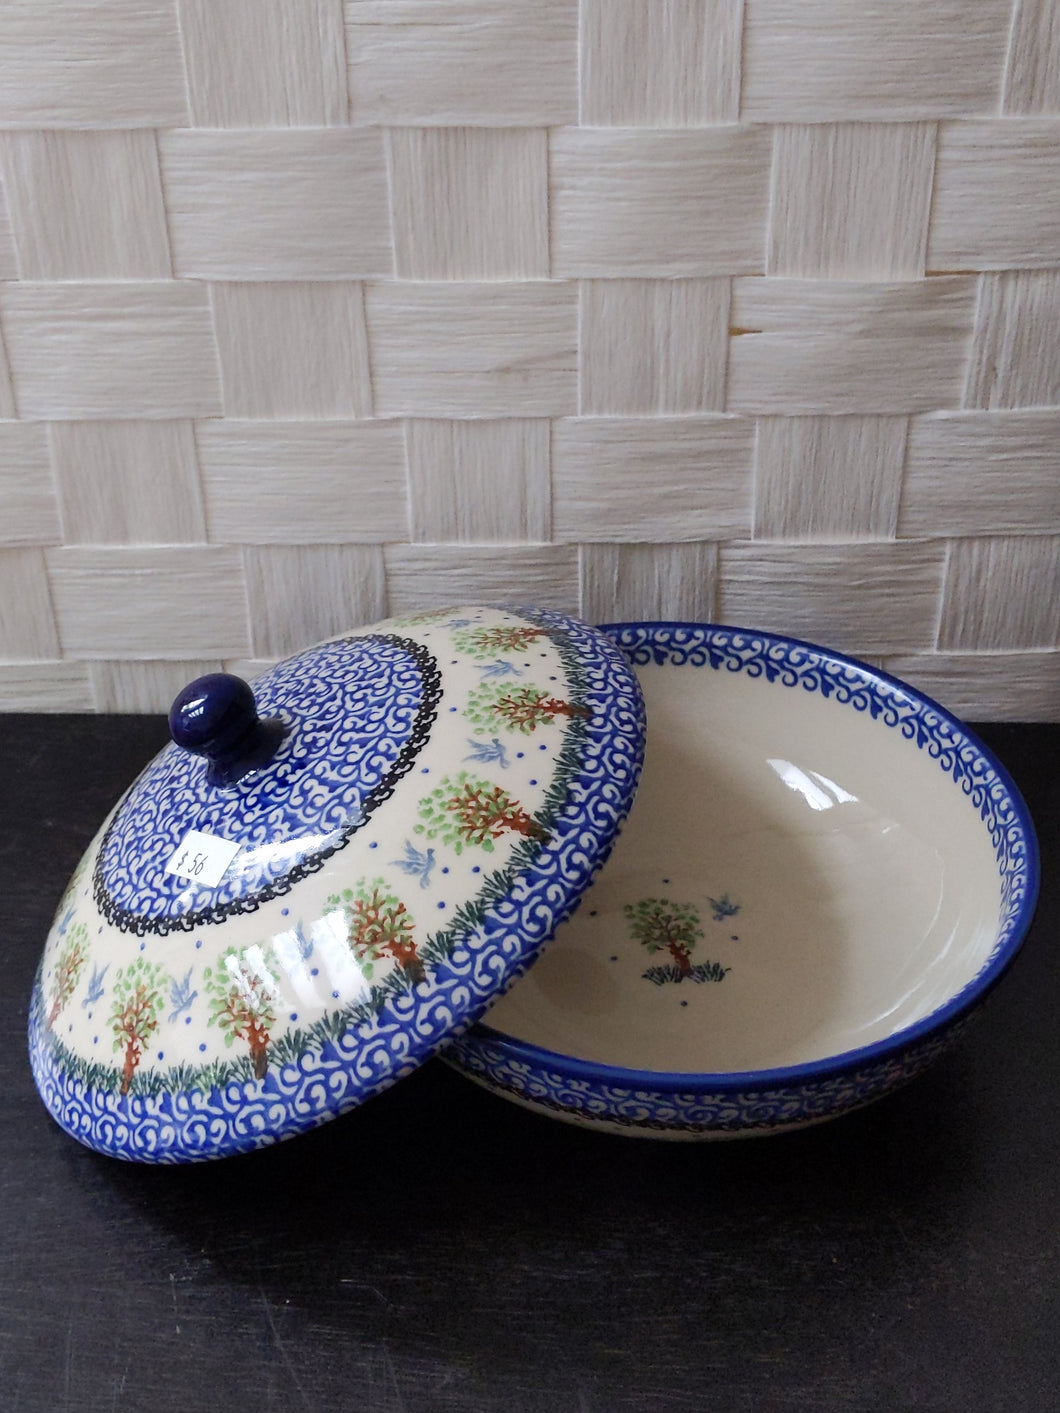 Round dish with lid